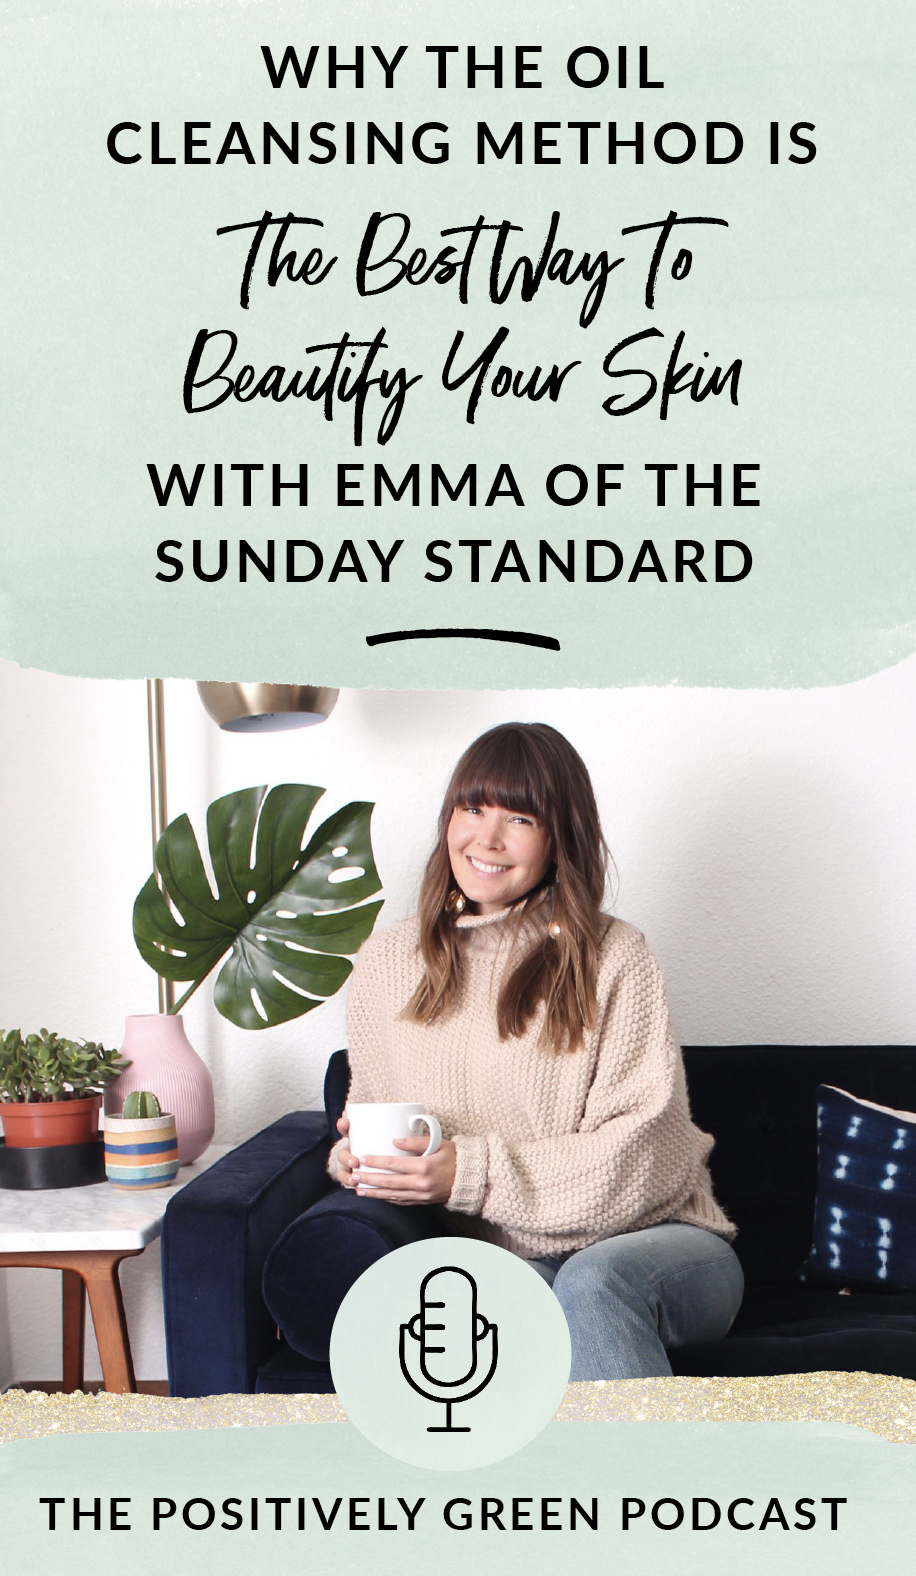 Why the oil cleansing method is the best way to beautify your skin episode 22 of The Positively Green Podcast with Emma of This Is The Sunday Standard